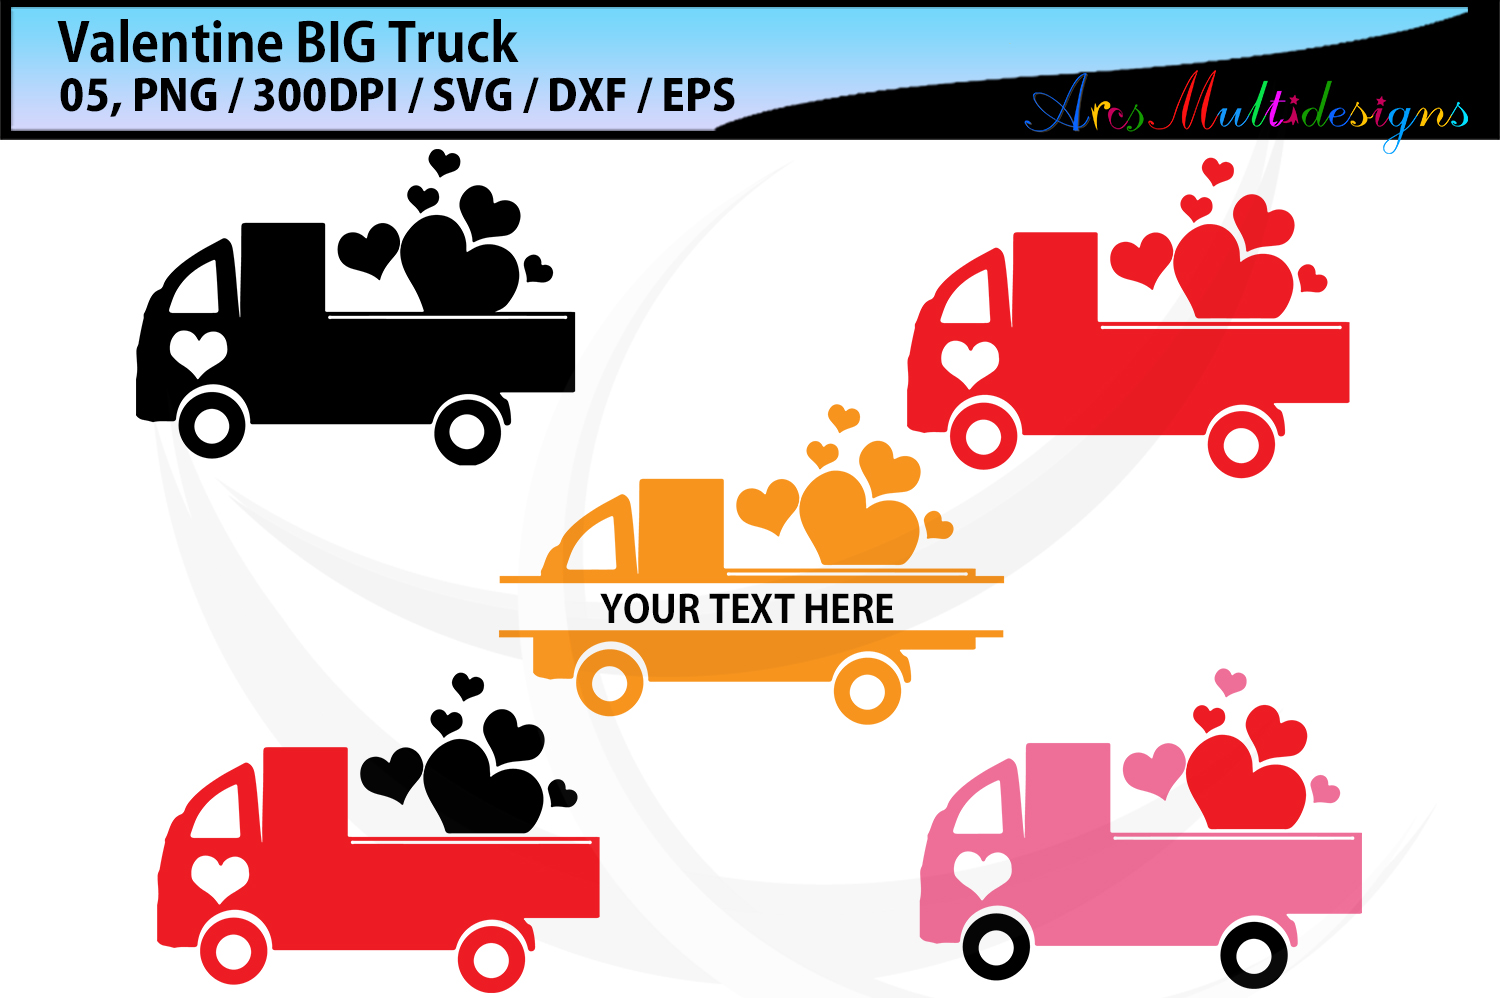 Download Free Valentine Truck Graphic By Arcs Multidesigns Creative Fabrica for Cricut Explore, Silhouette and other cutting machines.